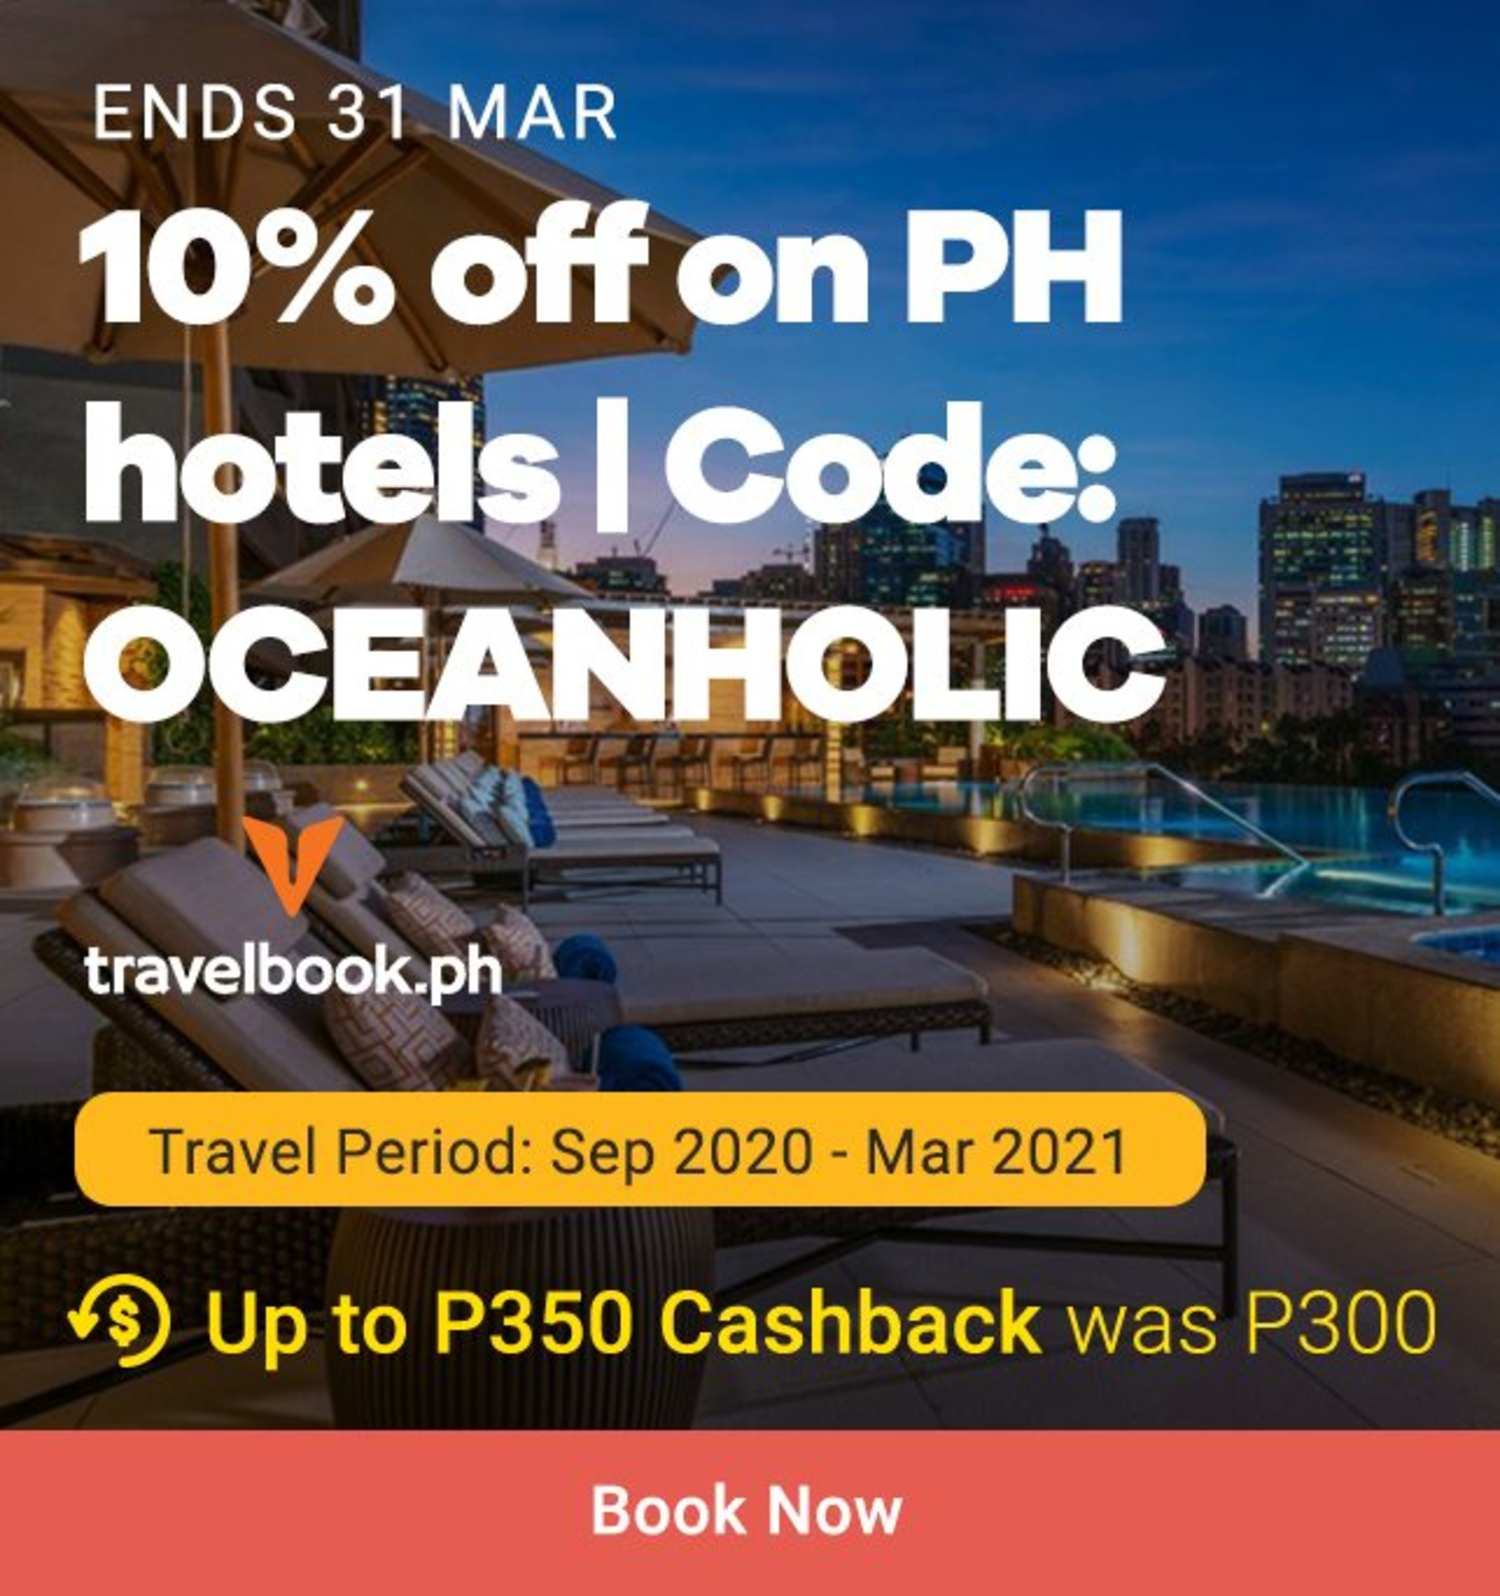 Travelbook: 10% off on PH hotels